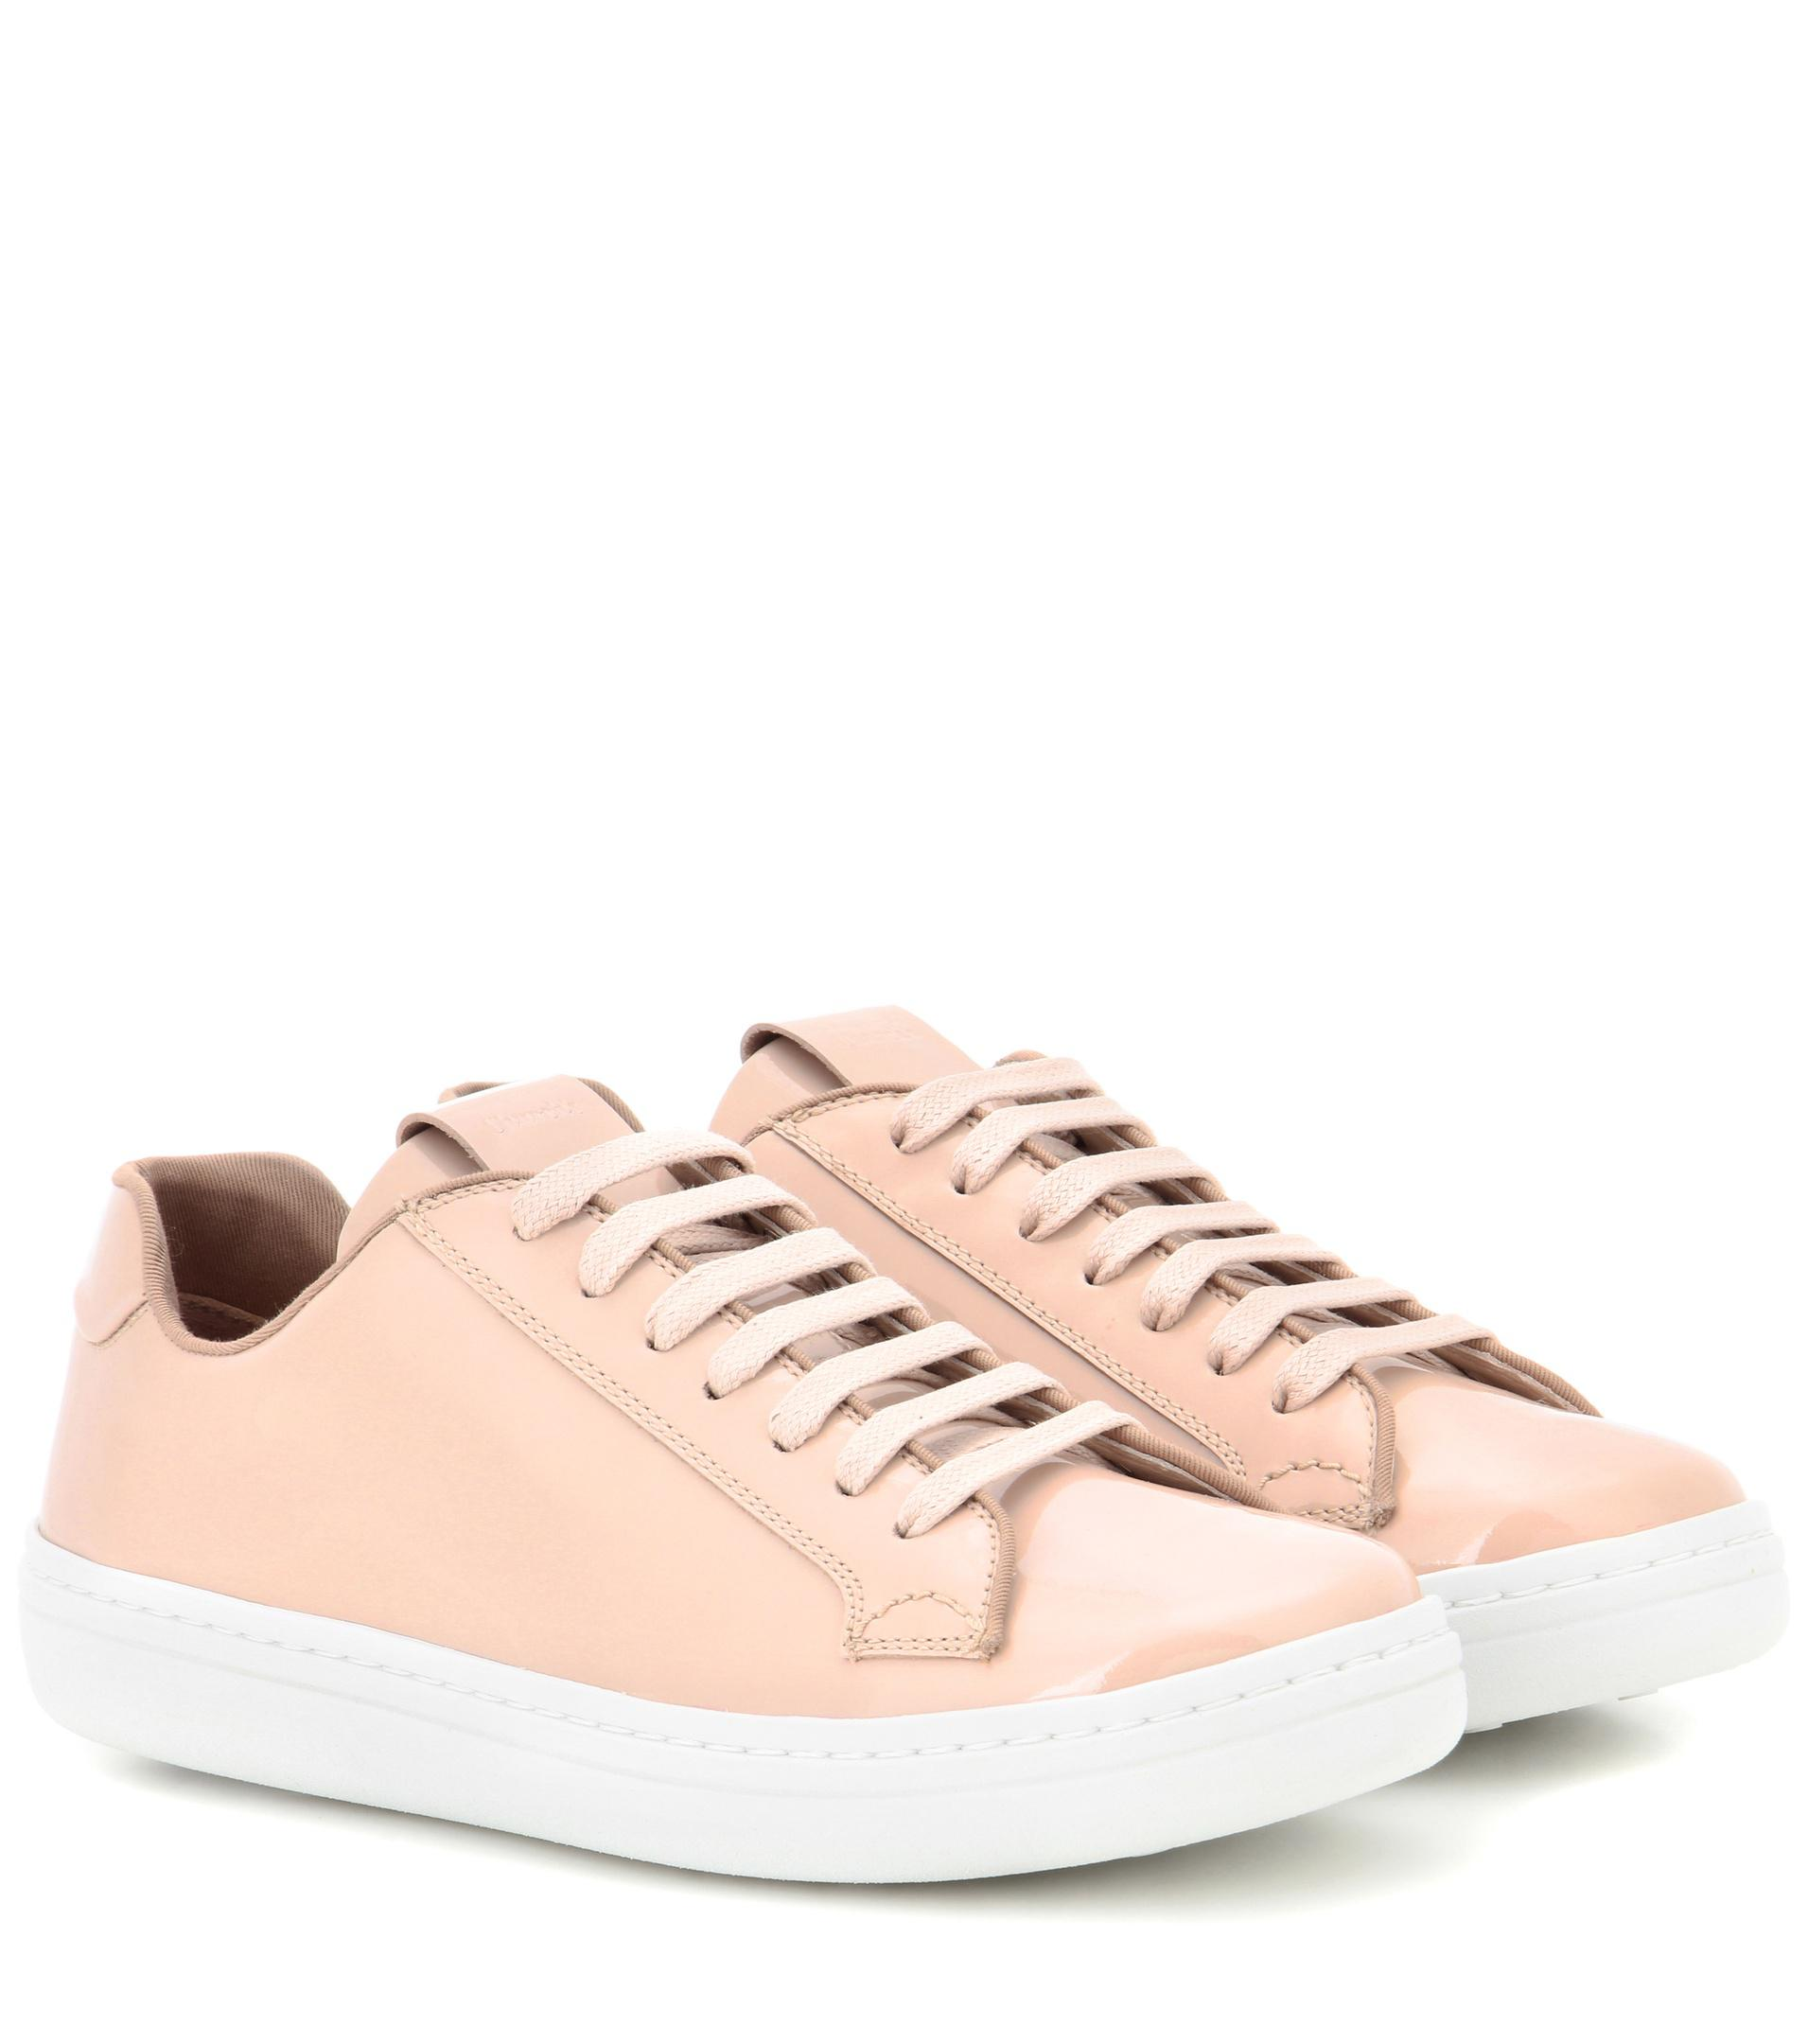 Church's Mirfield patent leather sneakers Cheap Sale 2018 Unisex Cheap Sale Professional y93gb6x